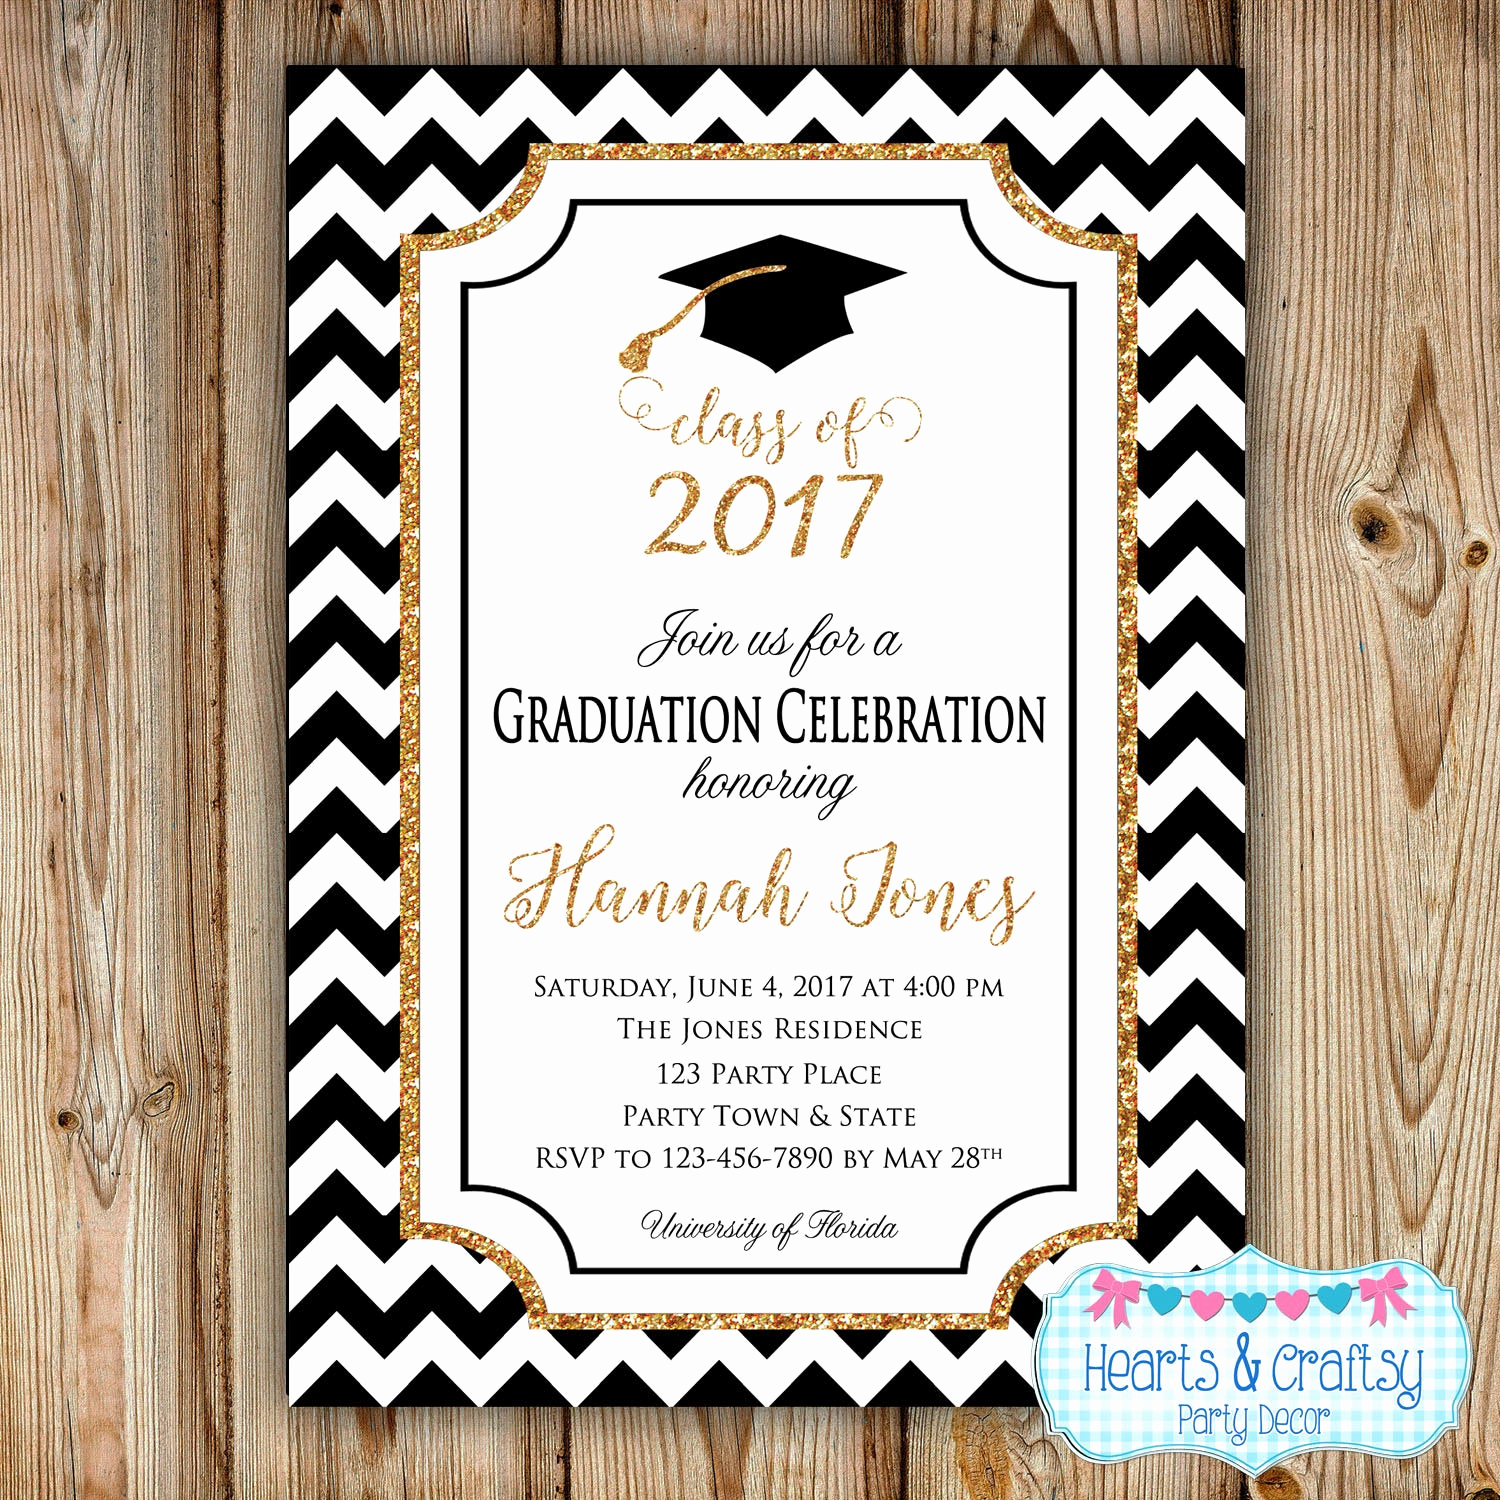 High School Graduation Invitation Templates Elegant Graduation Party Invitation College Graduation Invitation